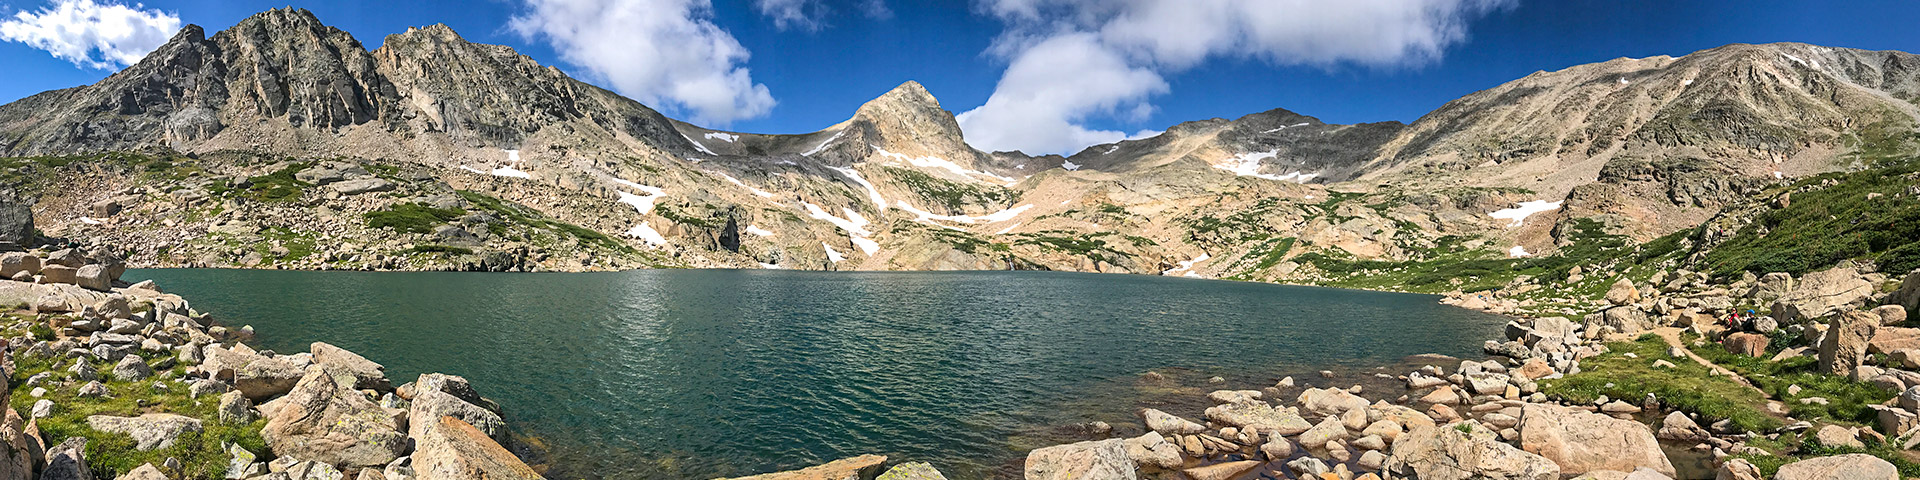 Panoramic views from the Blue Lake Trail hike in Indian Peaks, Colorado